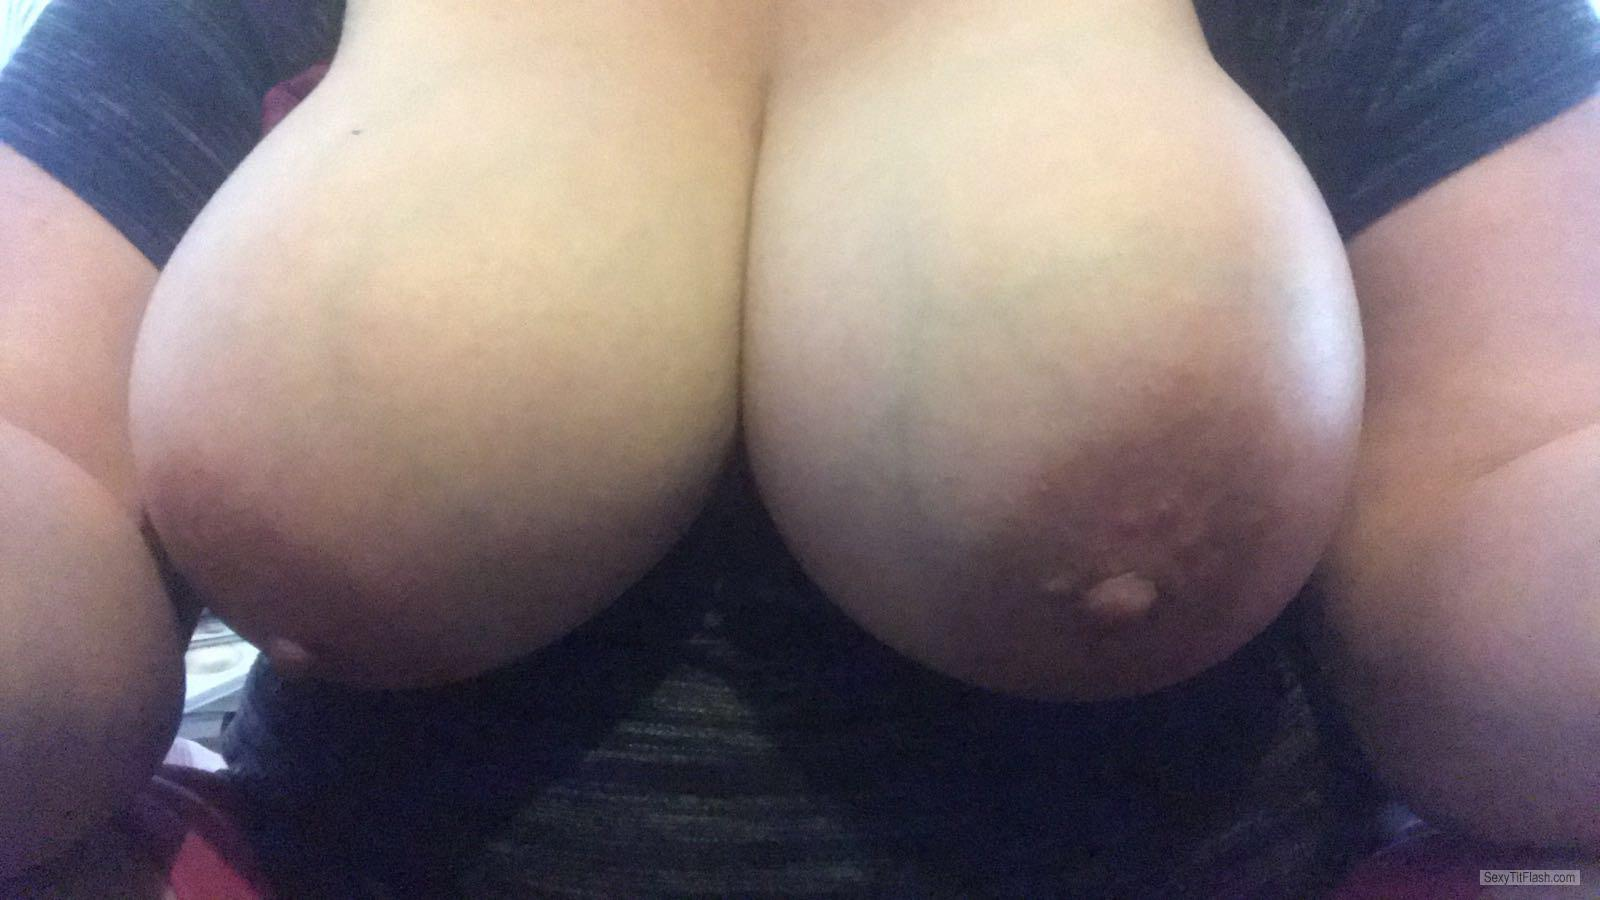 Very big Tits Of My Room Mate Selfie by My Online Slut